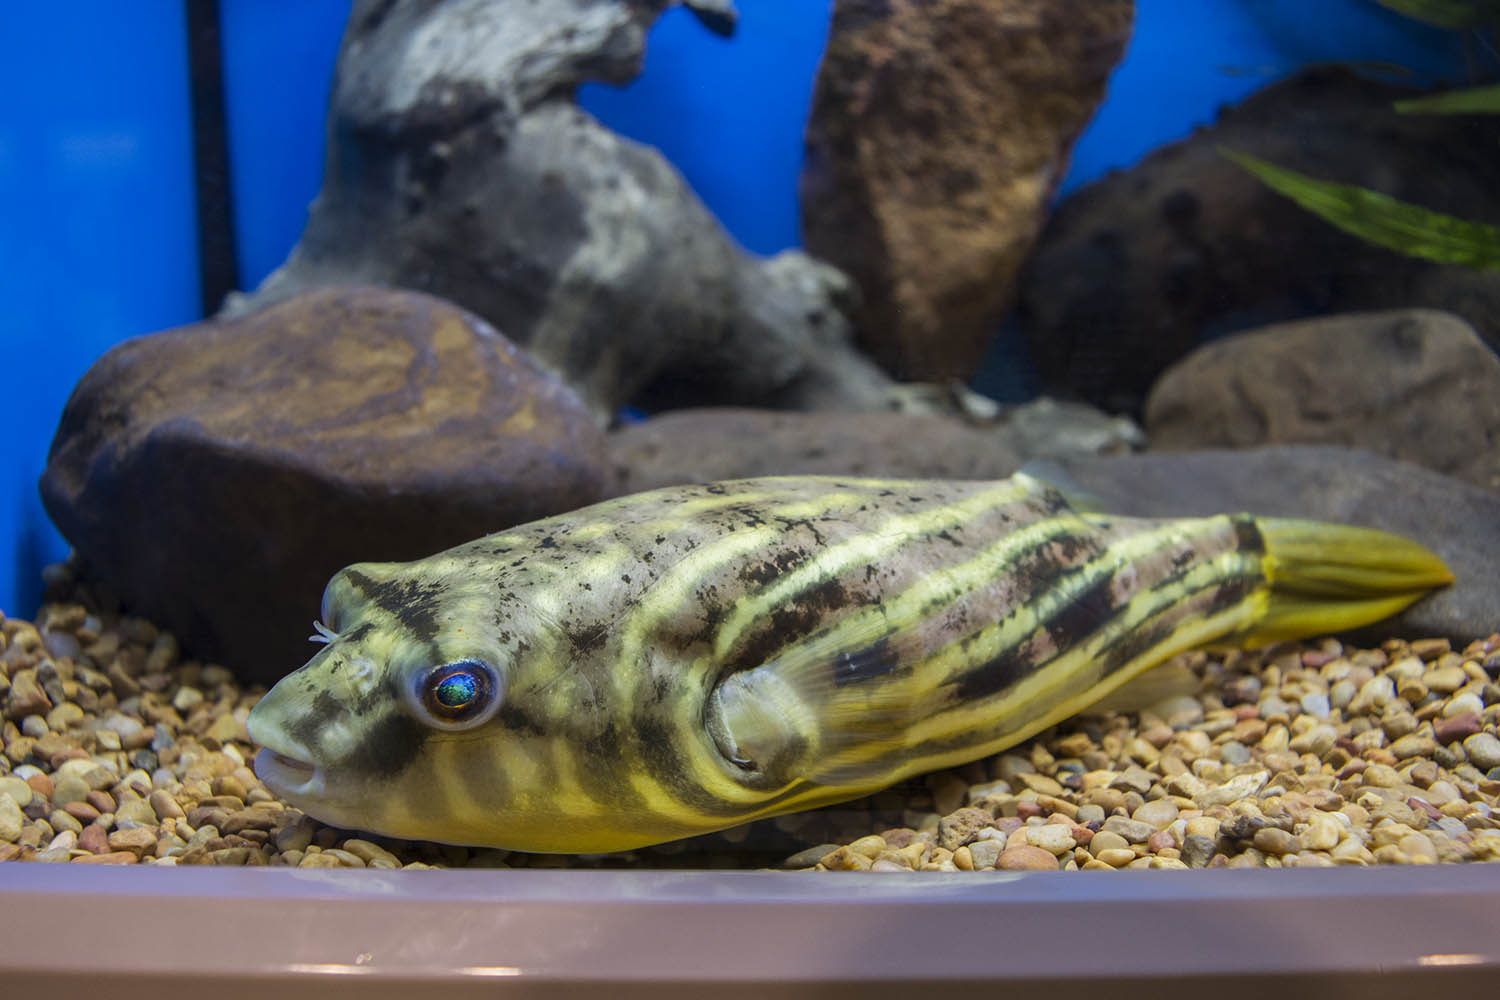 A Fahaka or Nile Puffer on display in the Ruinemans Aquarium tanks